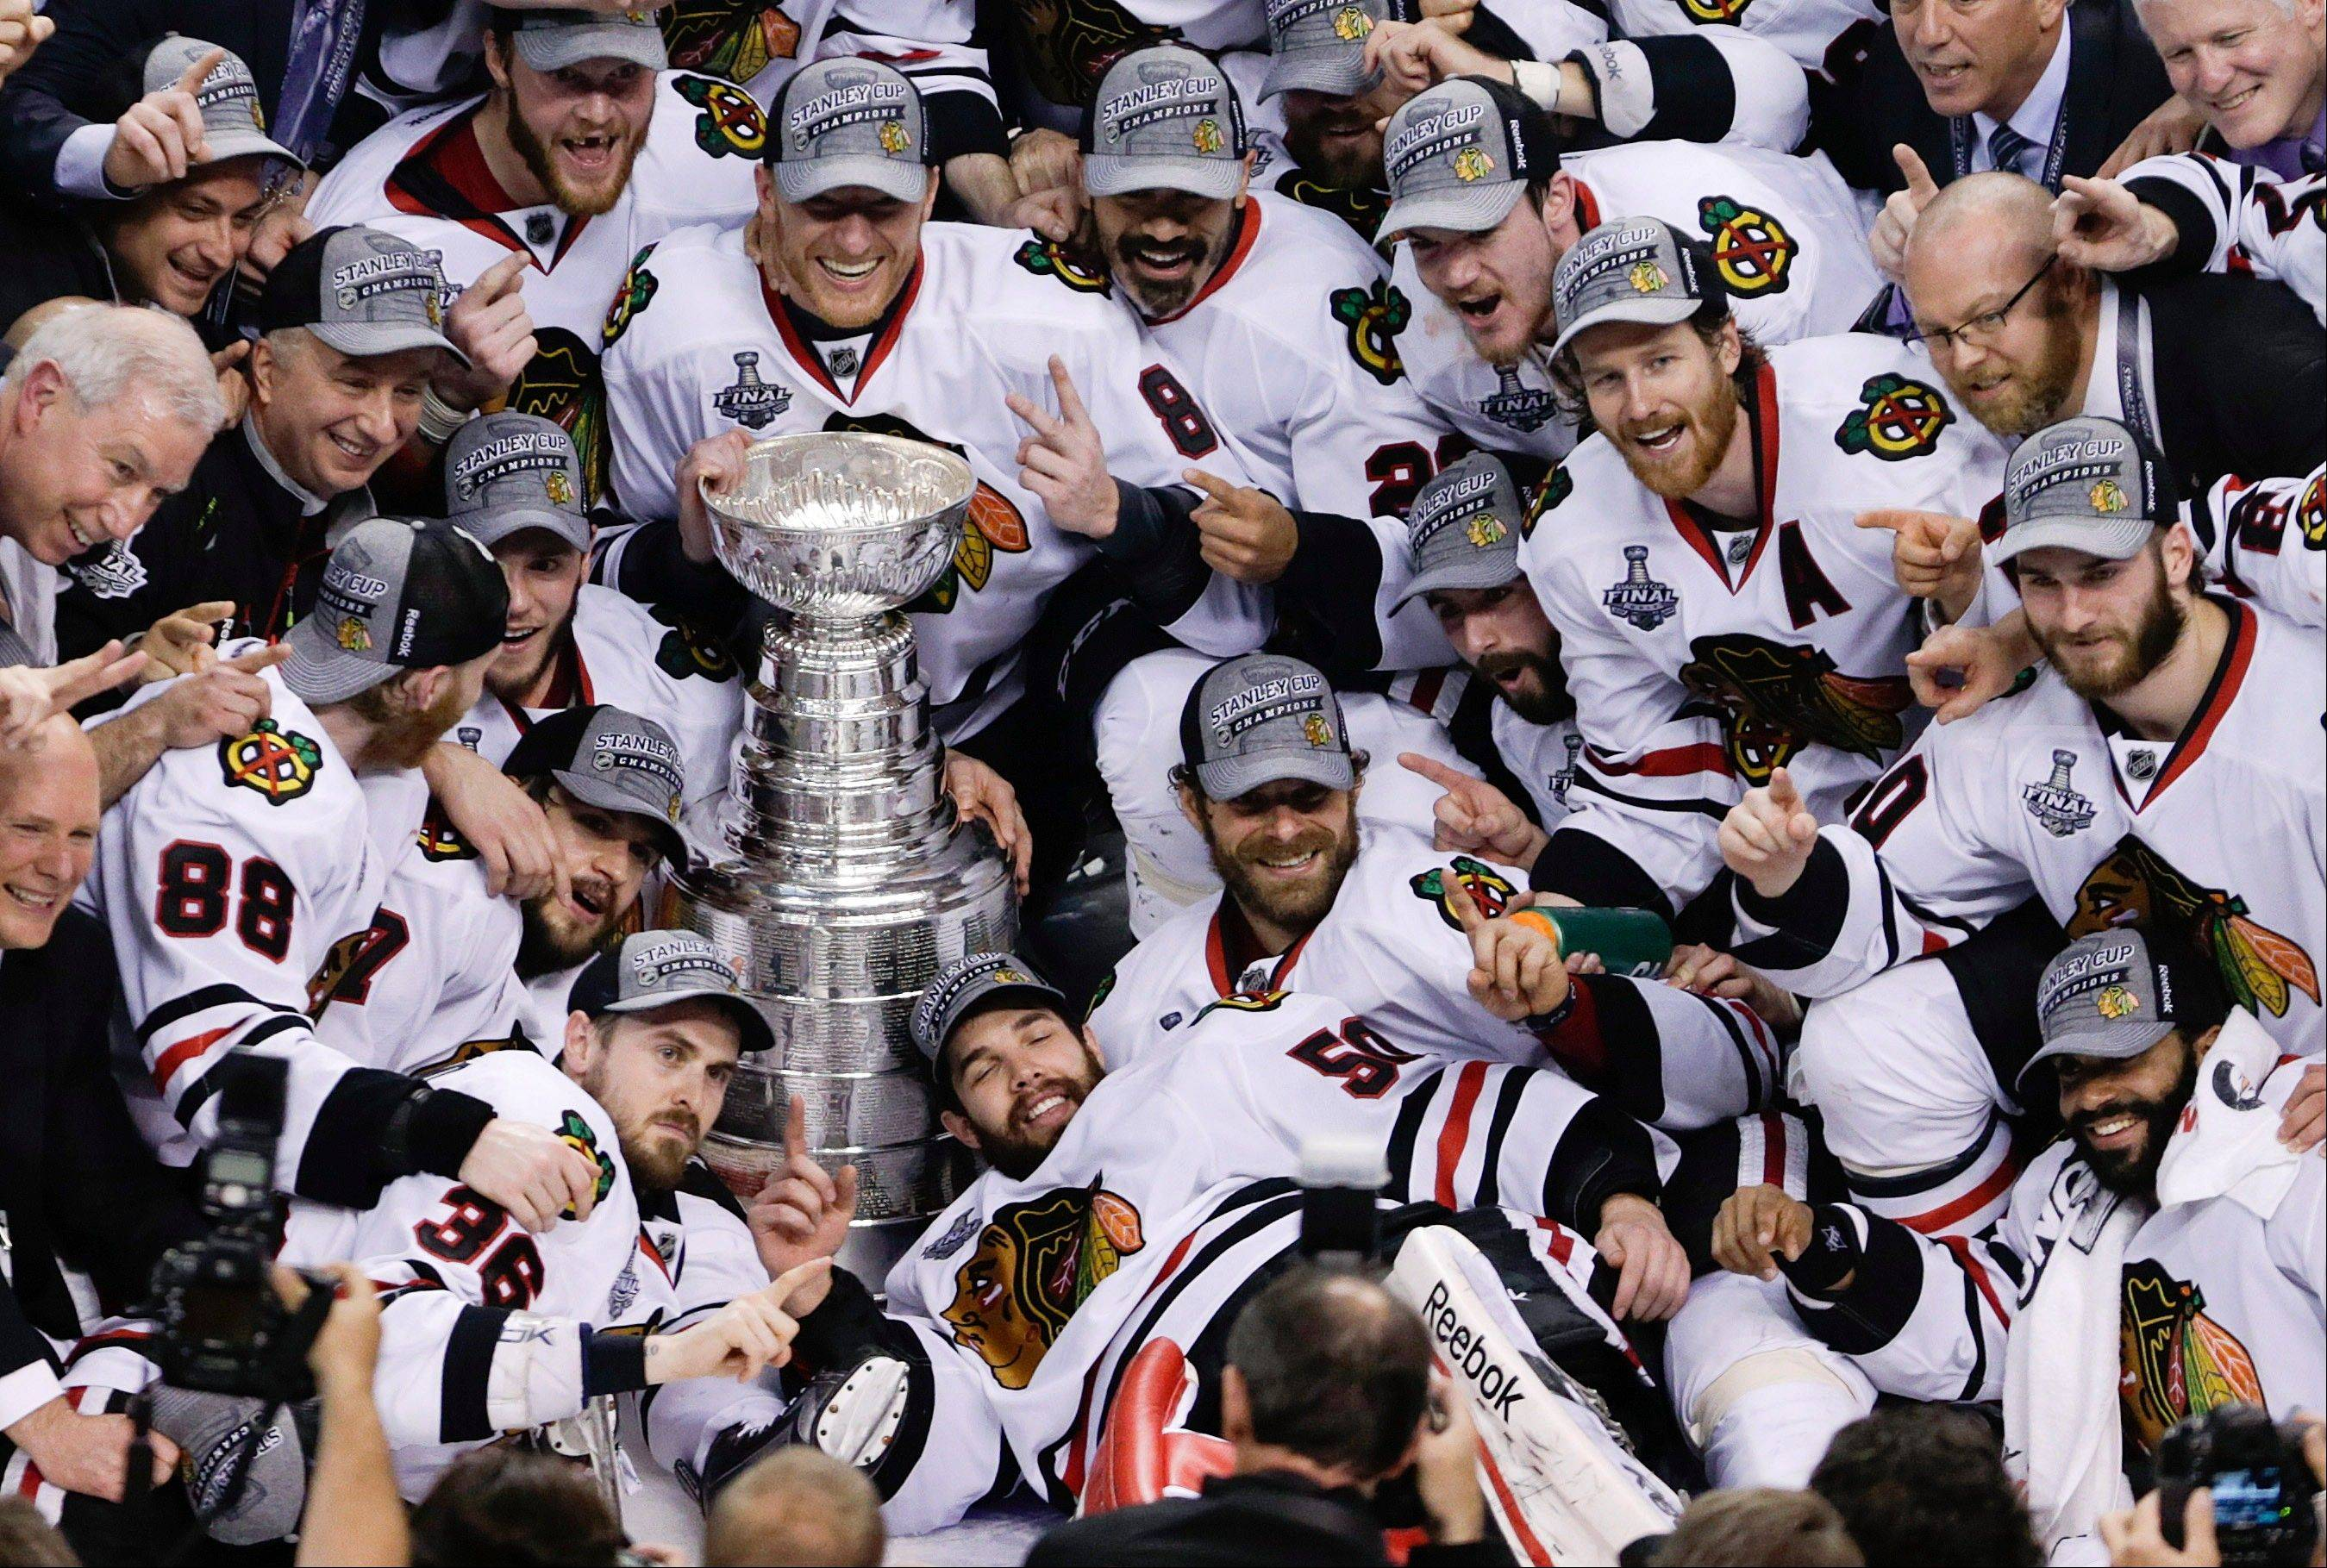 The Chicago Blackhawks pose with the Stanley Cup after beating the Boston Bruins 3-2 in Game 6 of the NHL hockey Stanley Cup Finals, Monday, June 24, 2013, in Boston.